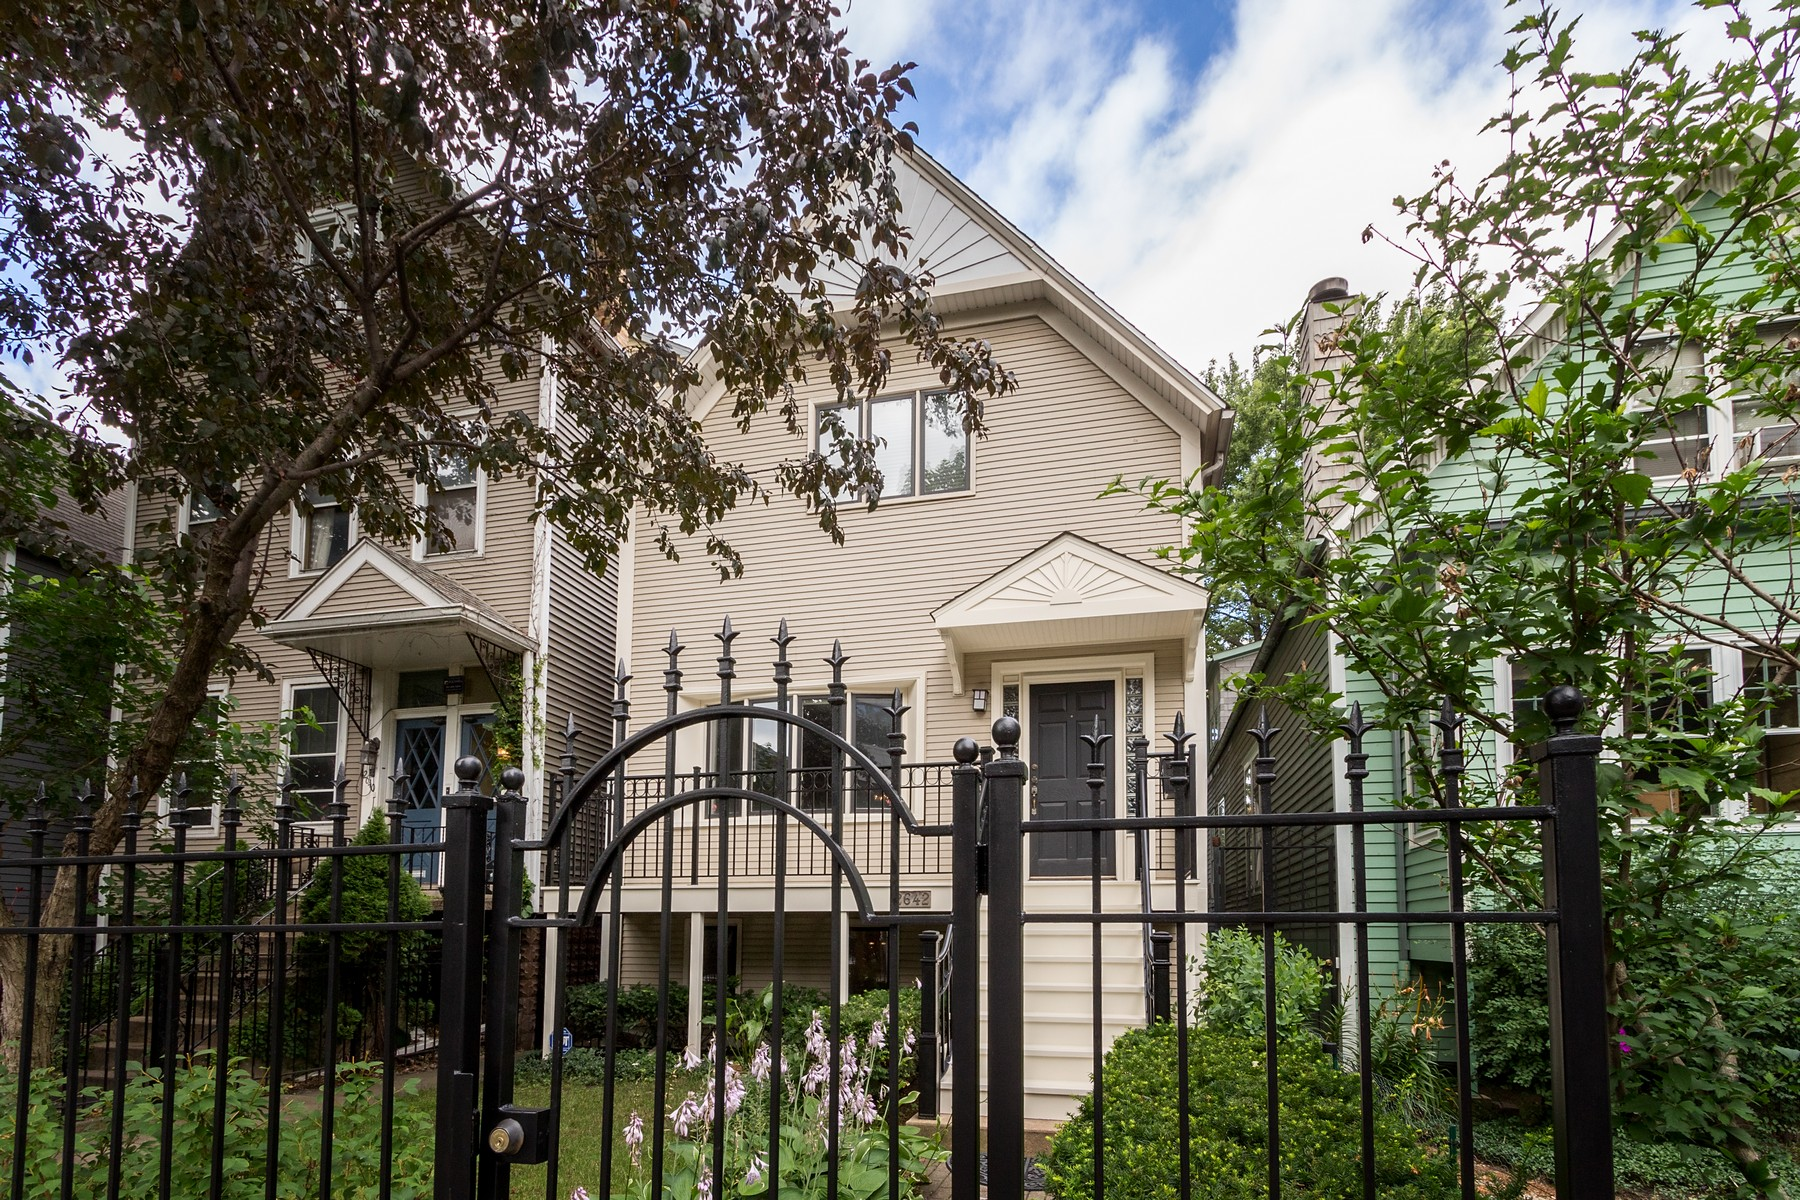 Single Family Home for Sale at Luxury Modern Home in Lincoln Park 2642 N Burling Street Chicago, Illinois 60614 United States